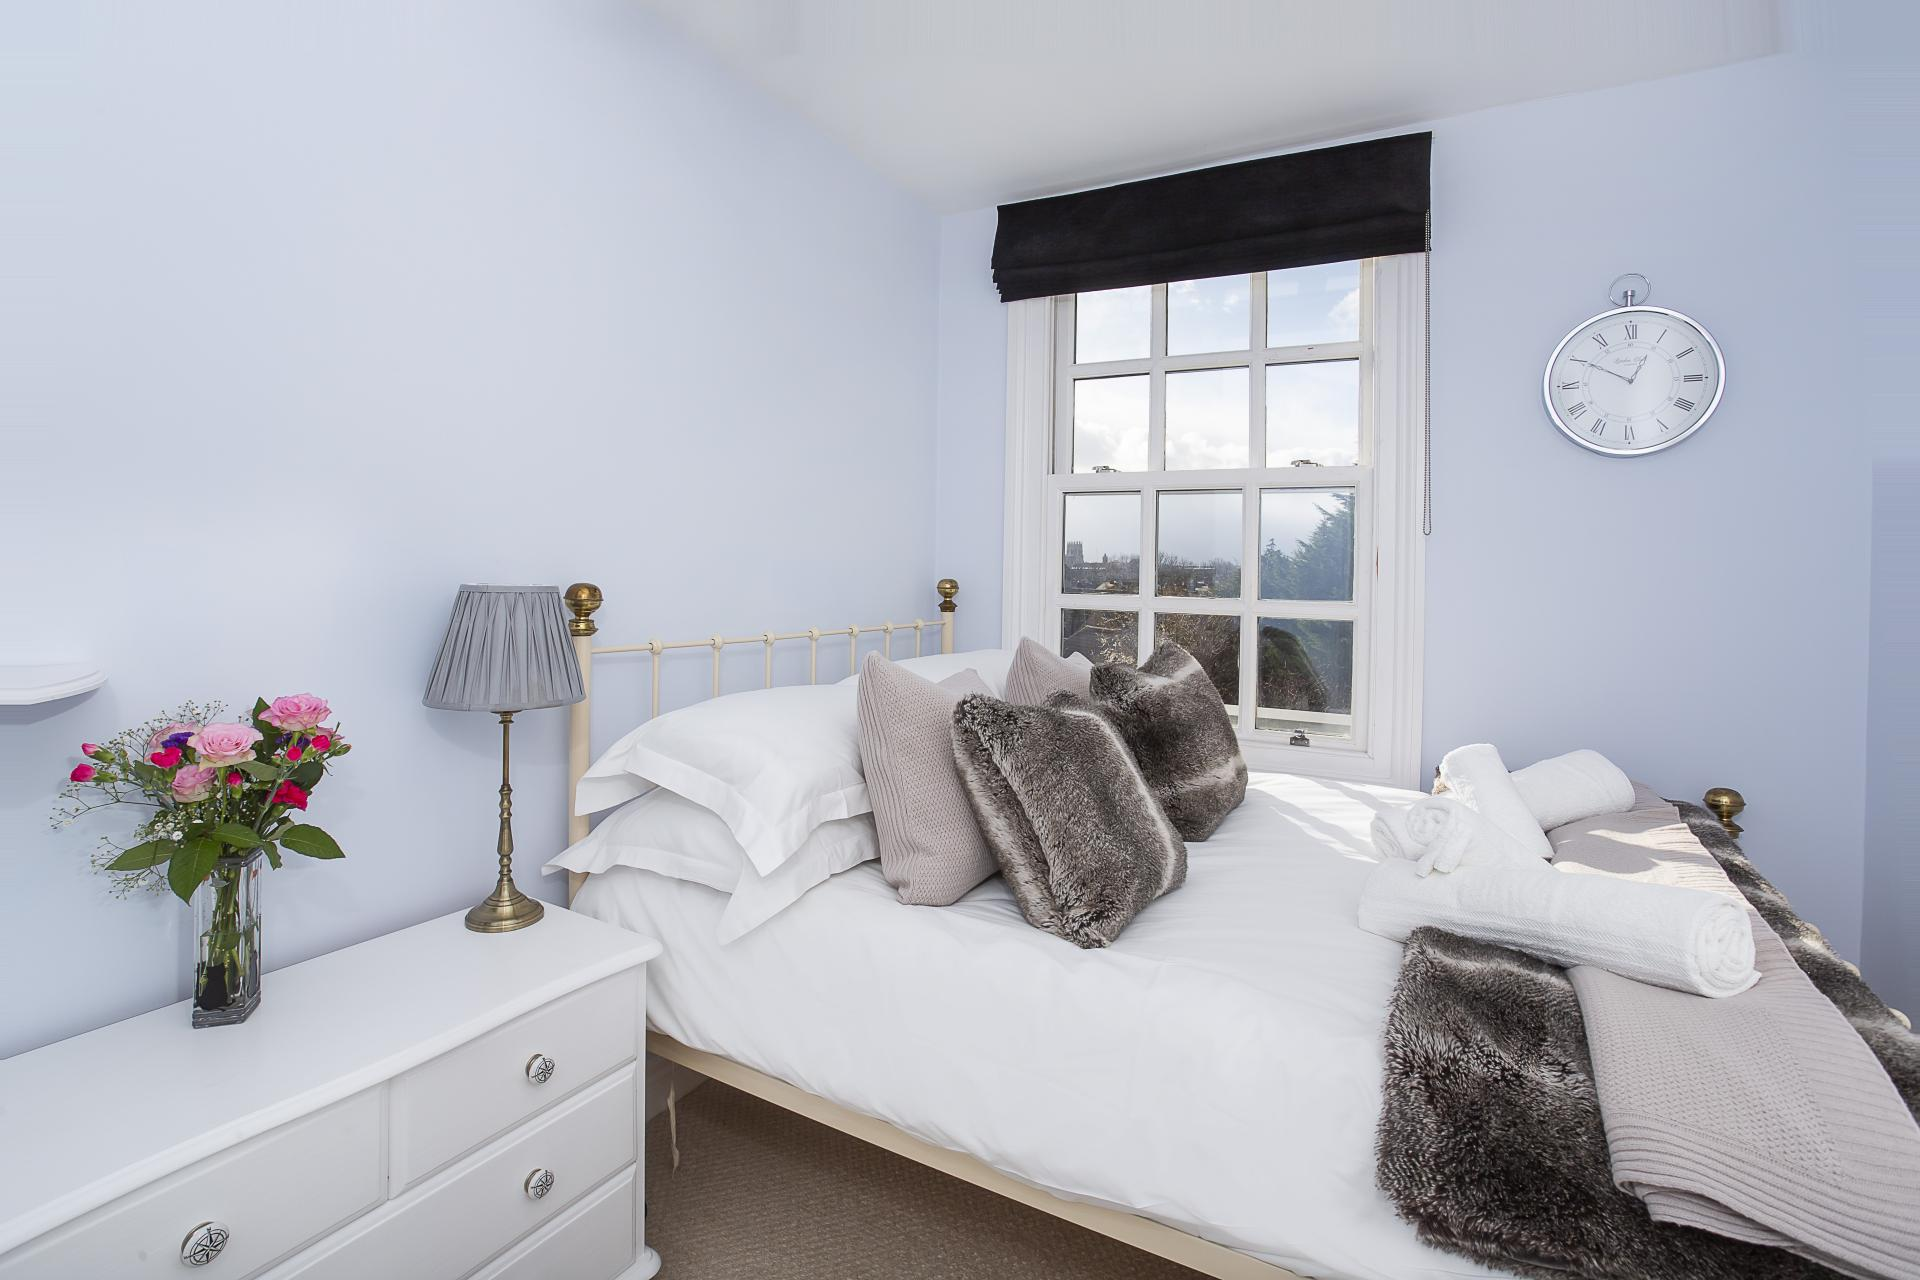 Bedroom at The Nutshell Apartment, Heworth, York - Citybase Apartments